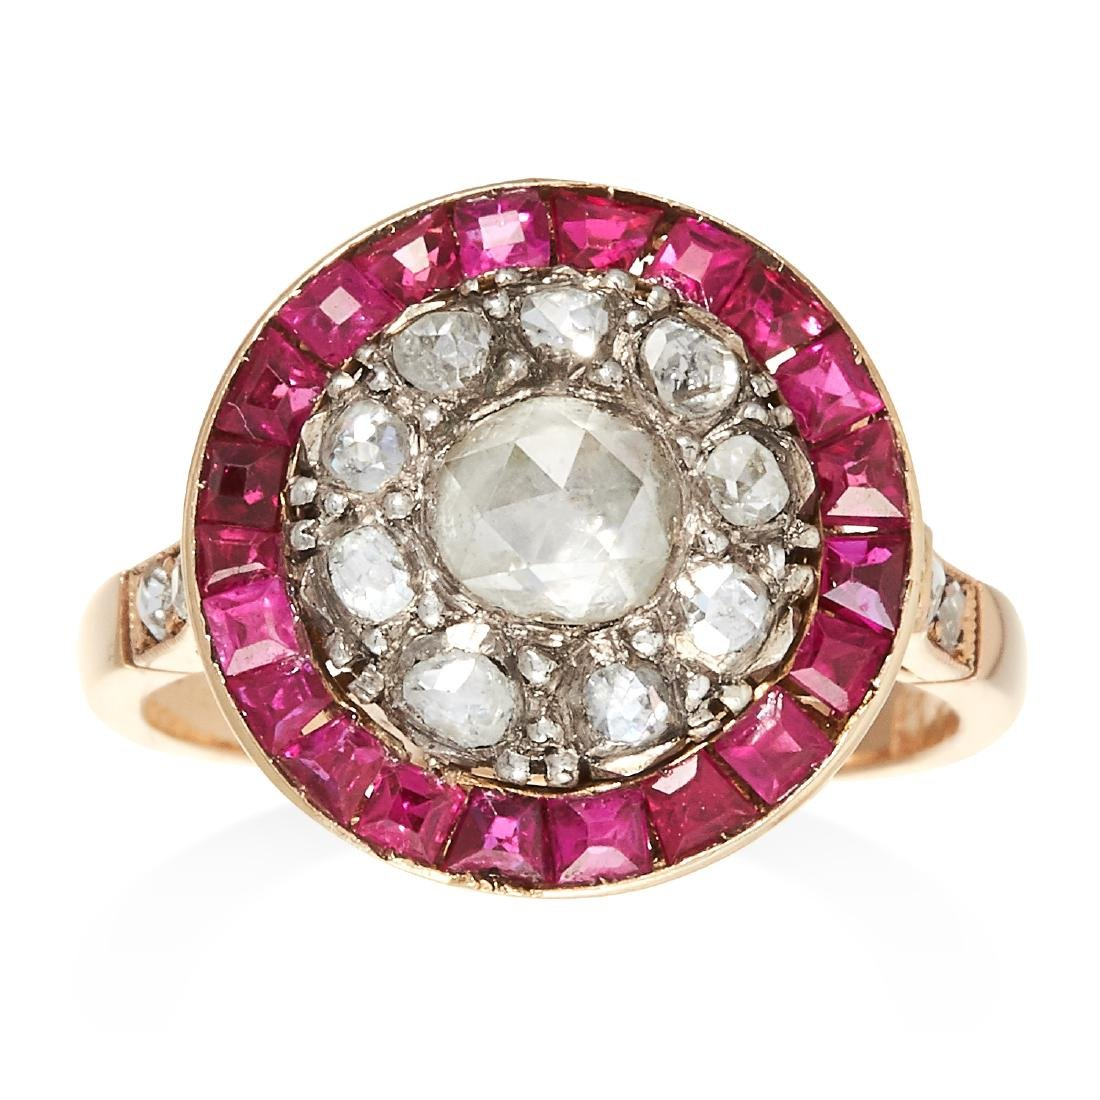 AN ANTIQUE DIAMOND AND RUBY DRESS RING in yellow gold,